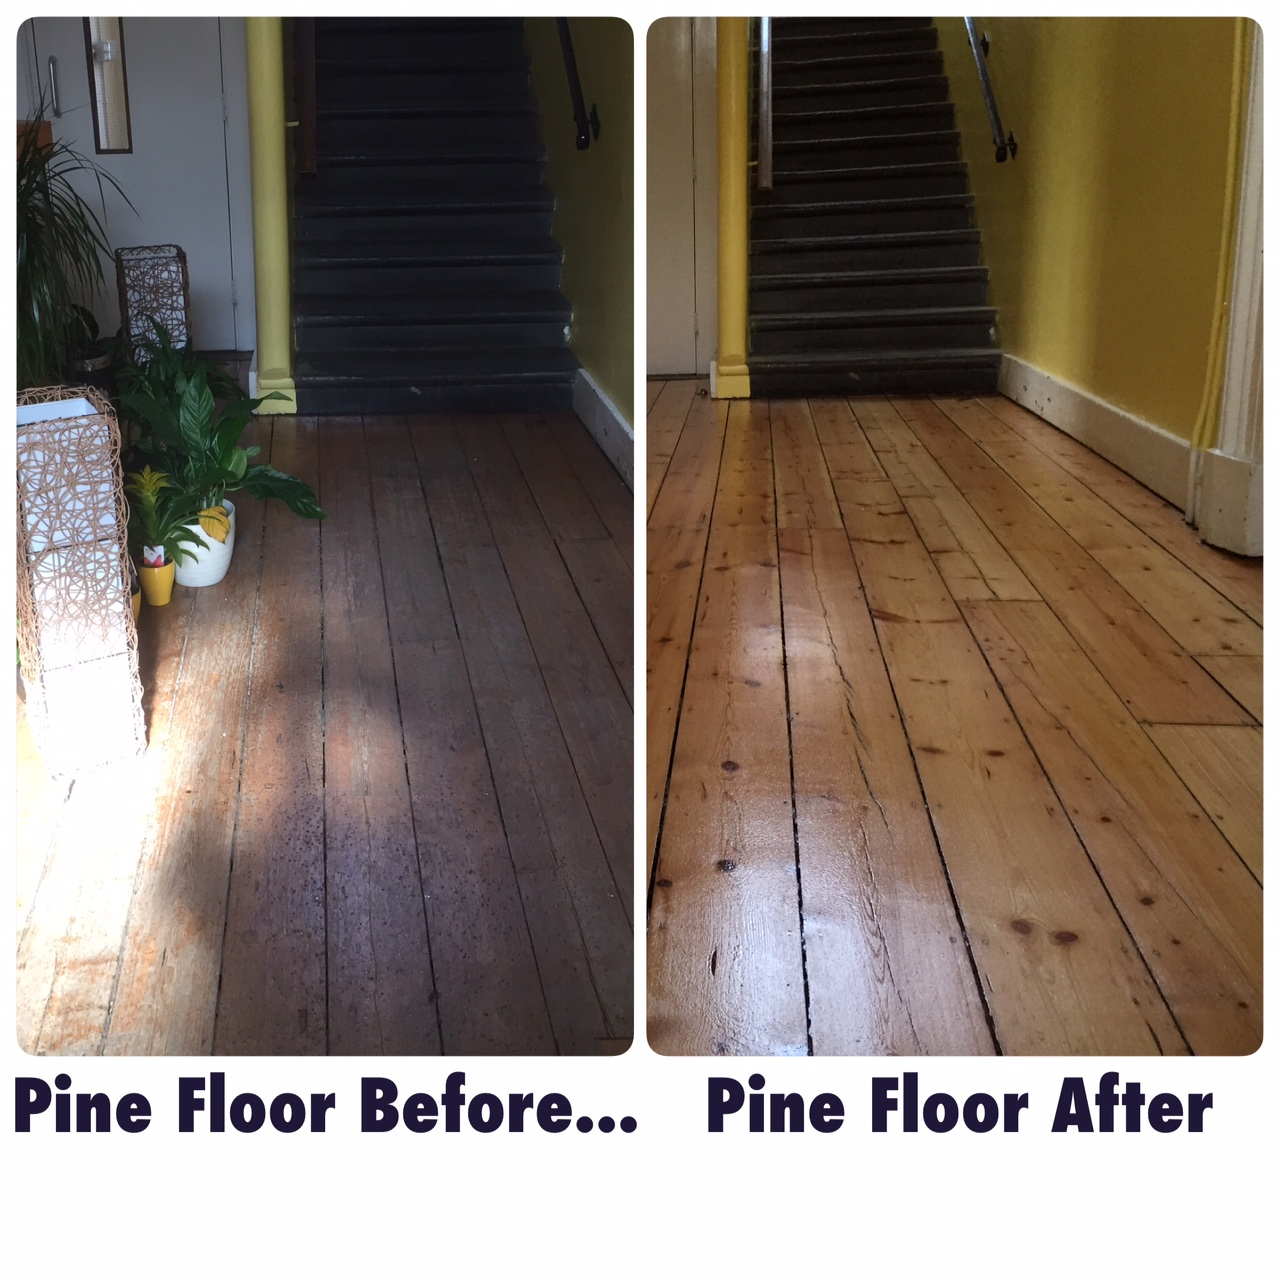 Pine Wood Floor Before and After